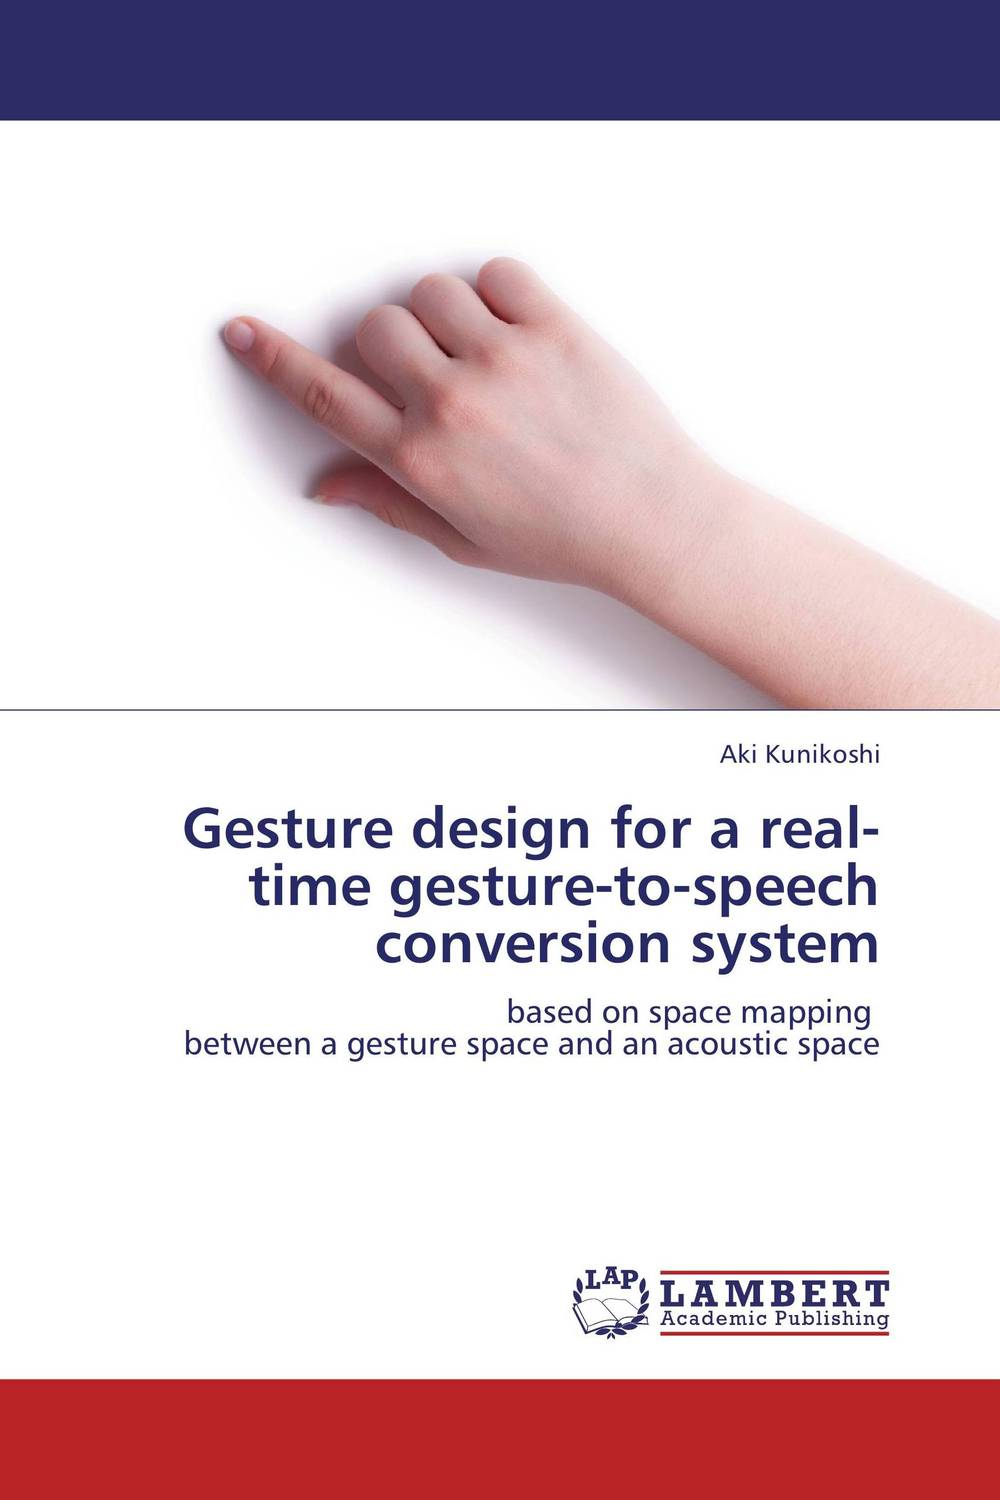 Gesture design for a real-time gesture-to-speech conversion system understanding mysql internals